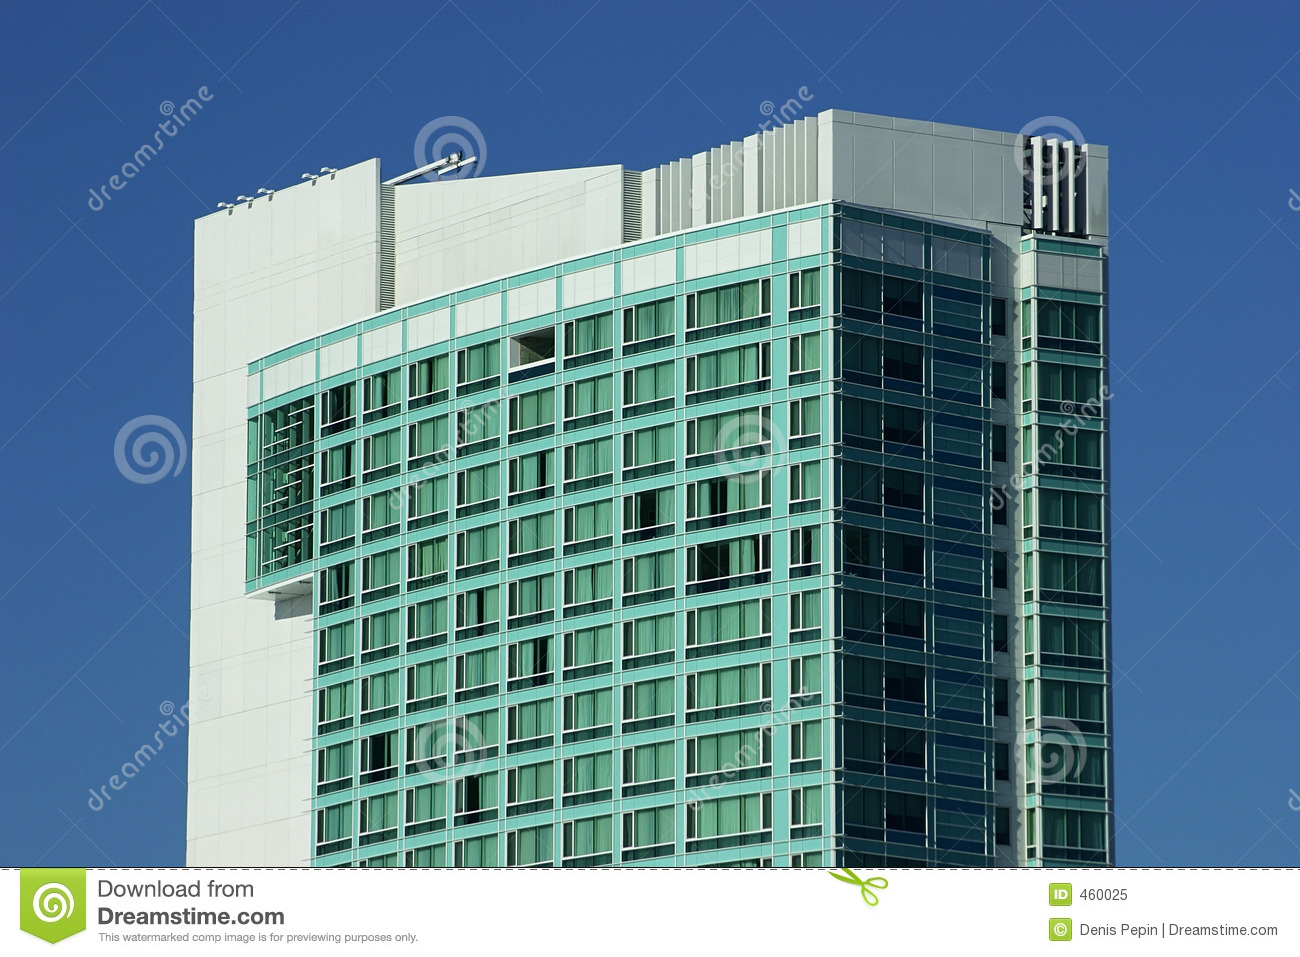 Download Hotel 2 stock image. Image of facade, quarters, blue, hostelry - 460025